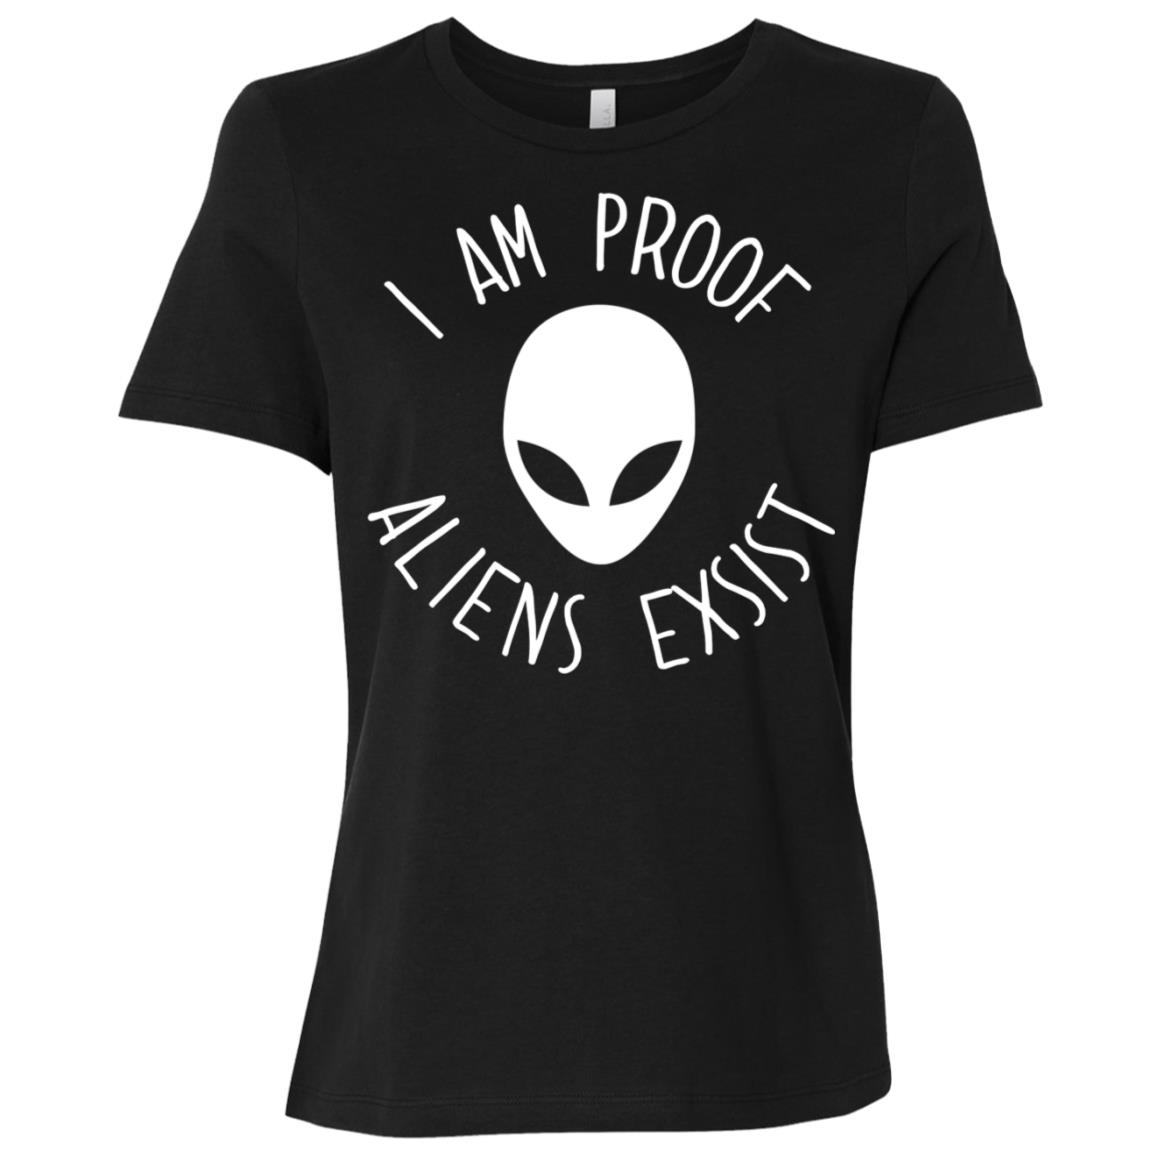 I Am Proof Aliens Exist Funny Space Ufo Trendy Tee Women Short Sleeve T-Shirt